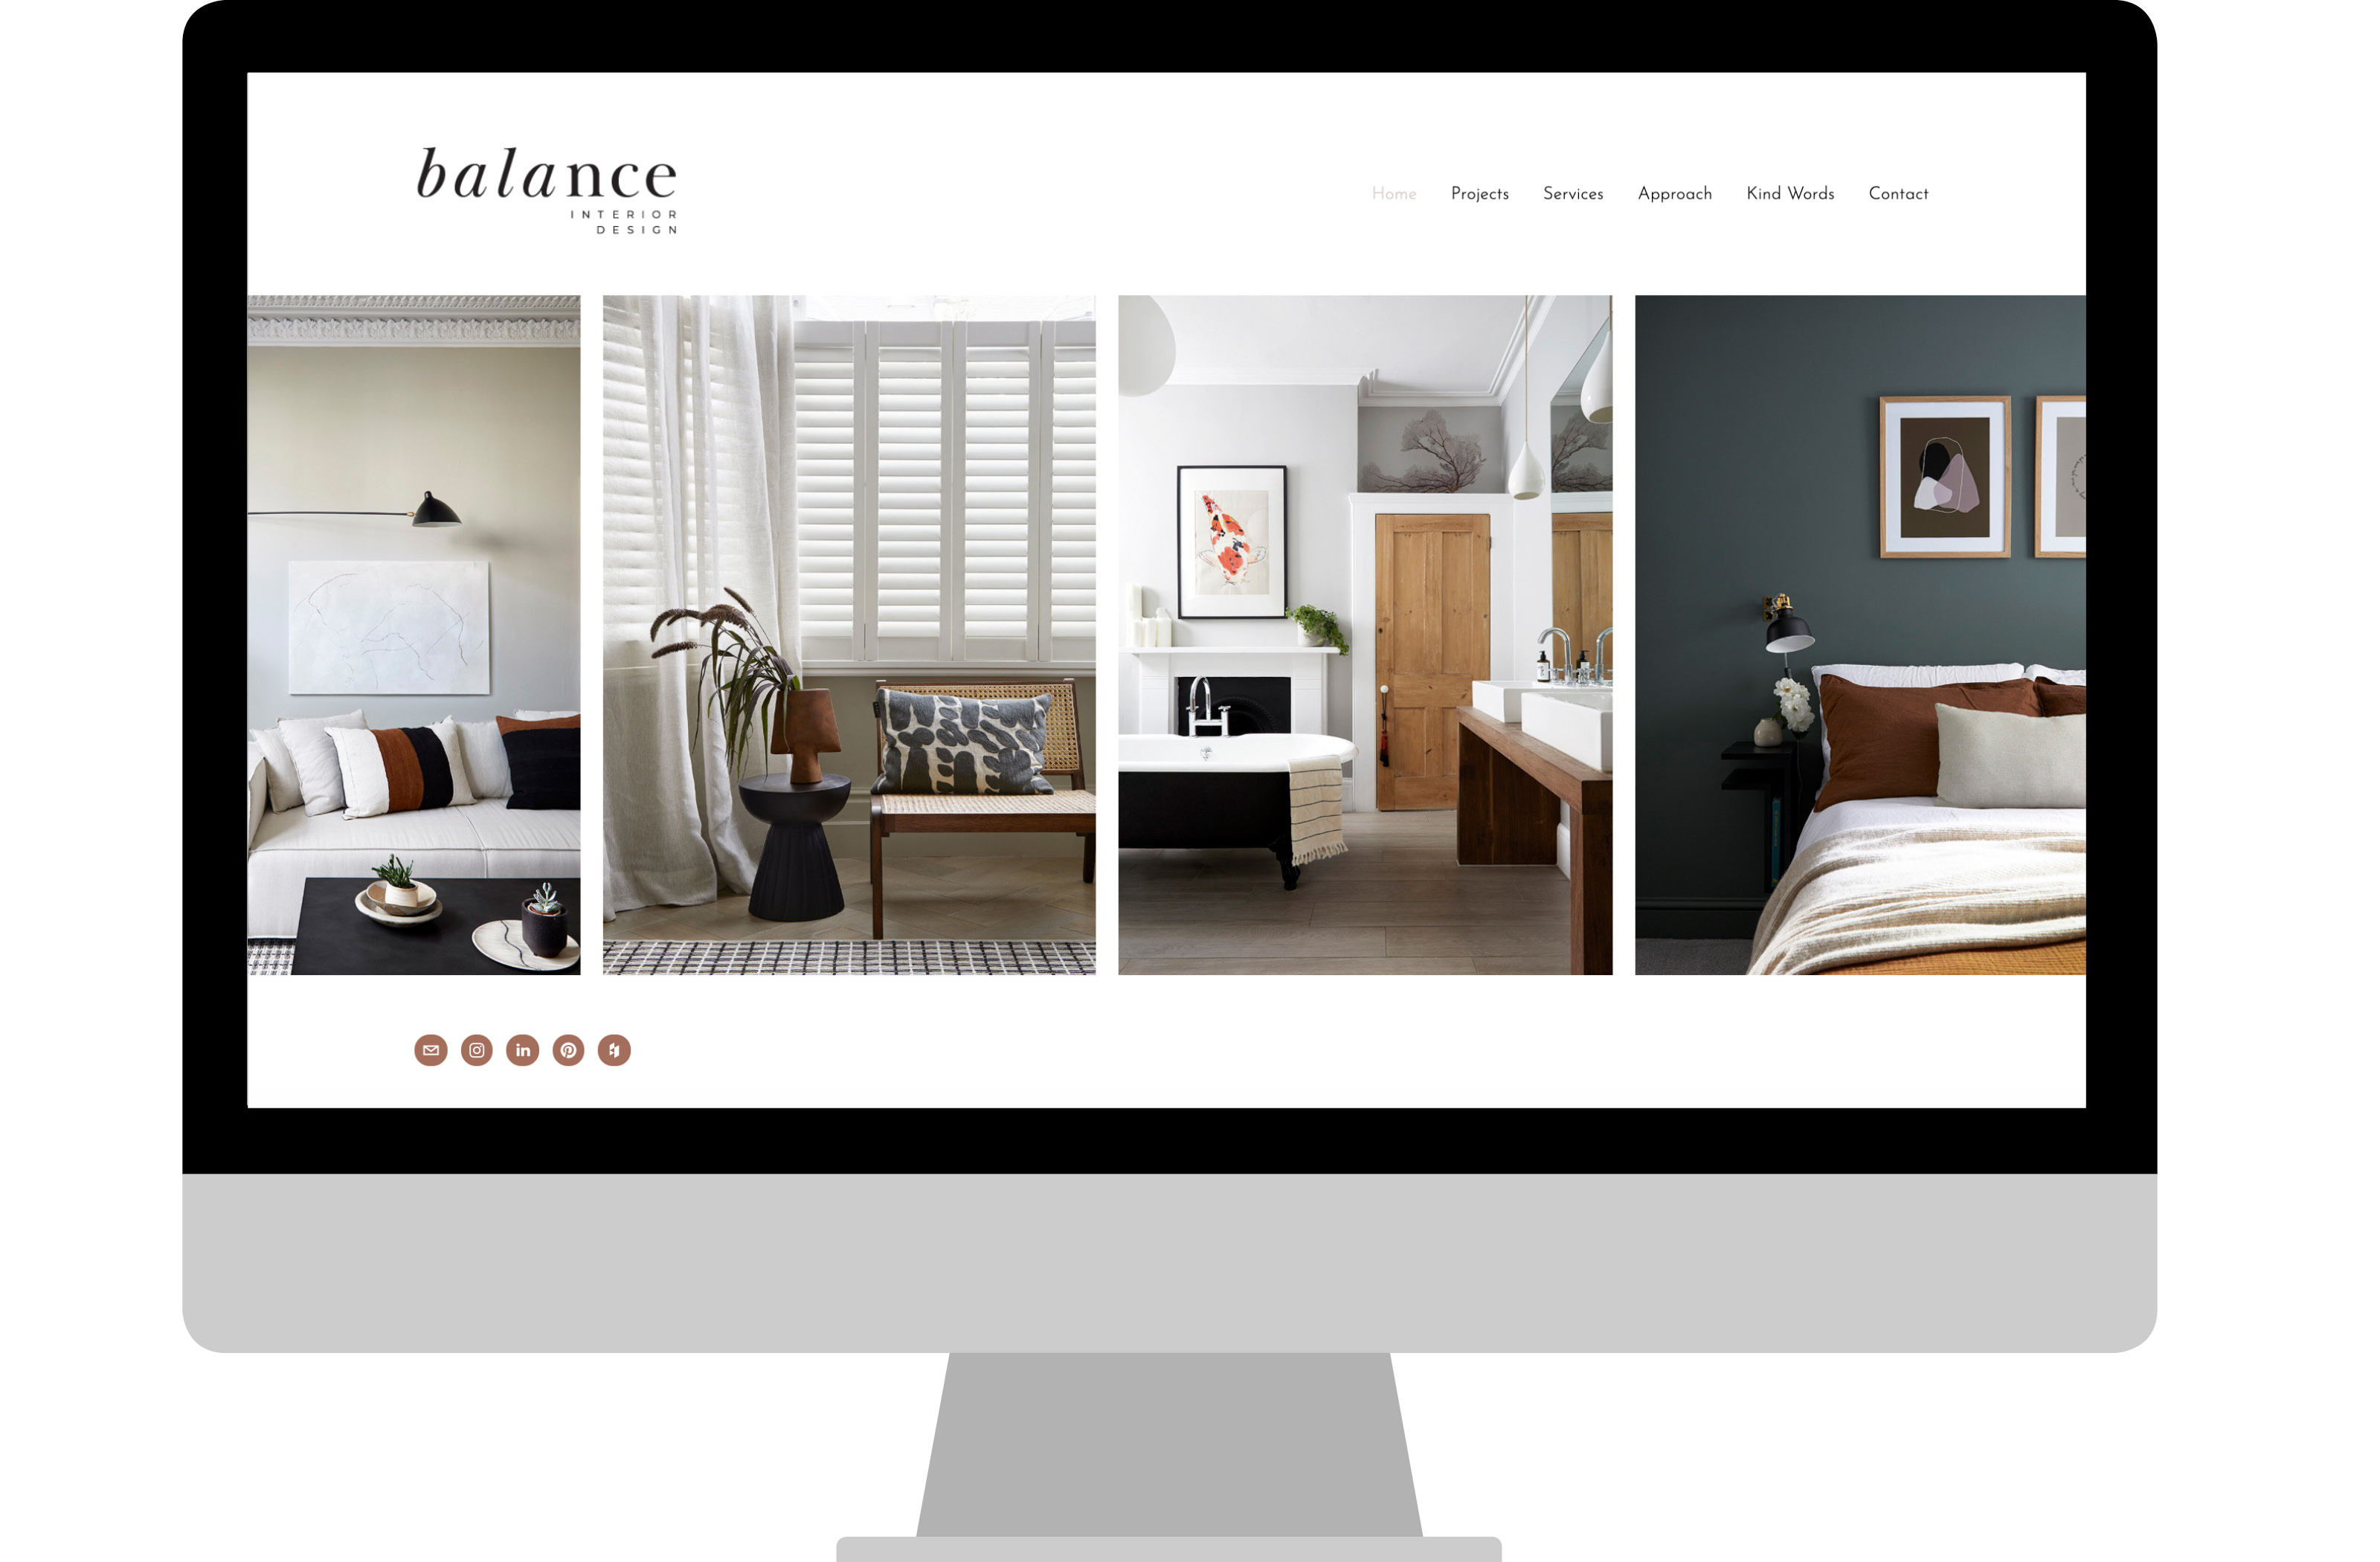 Balance Interior Design website home page designed by Cousin Branding